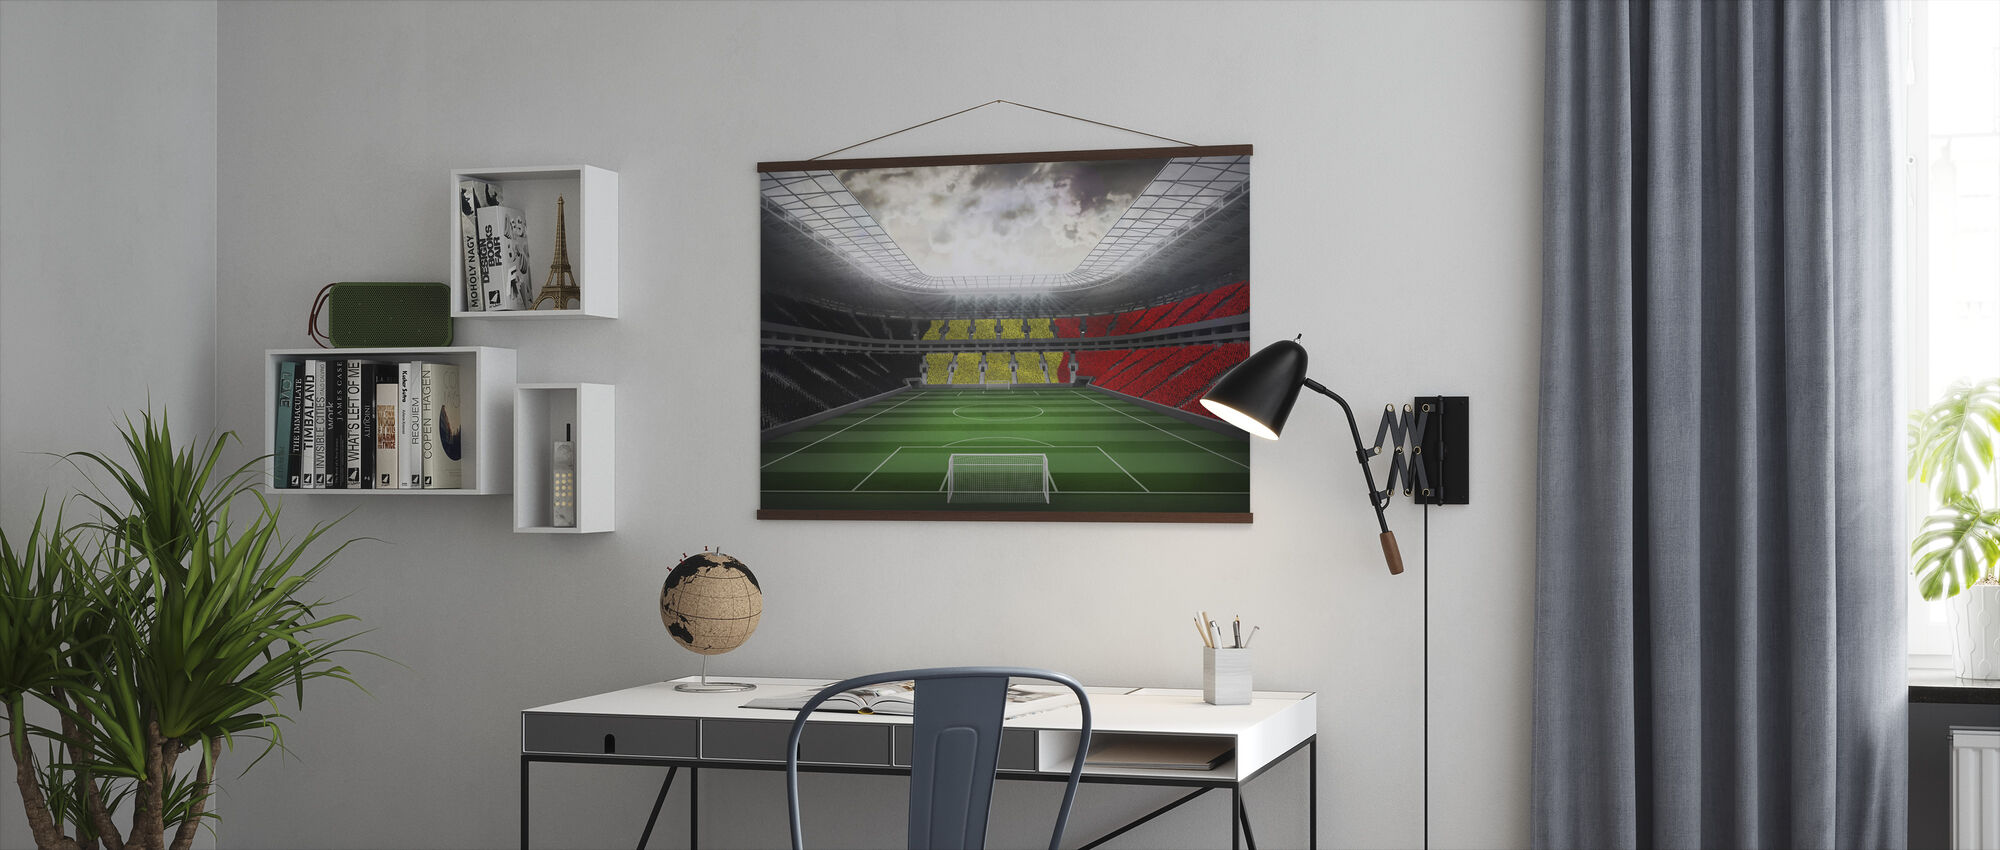 Giant Soccer Stadium - Poster - Office